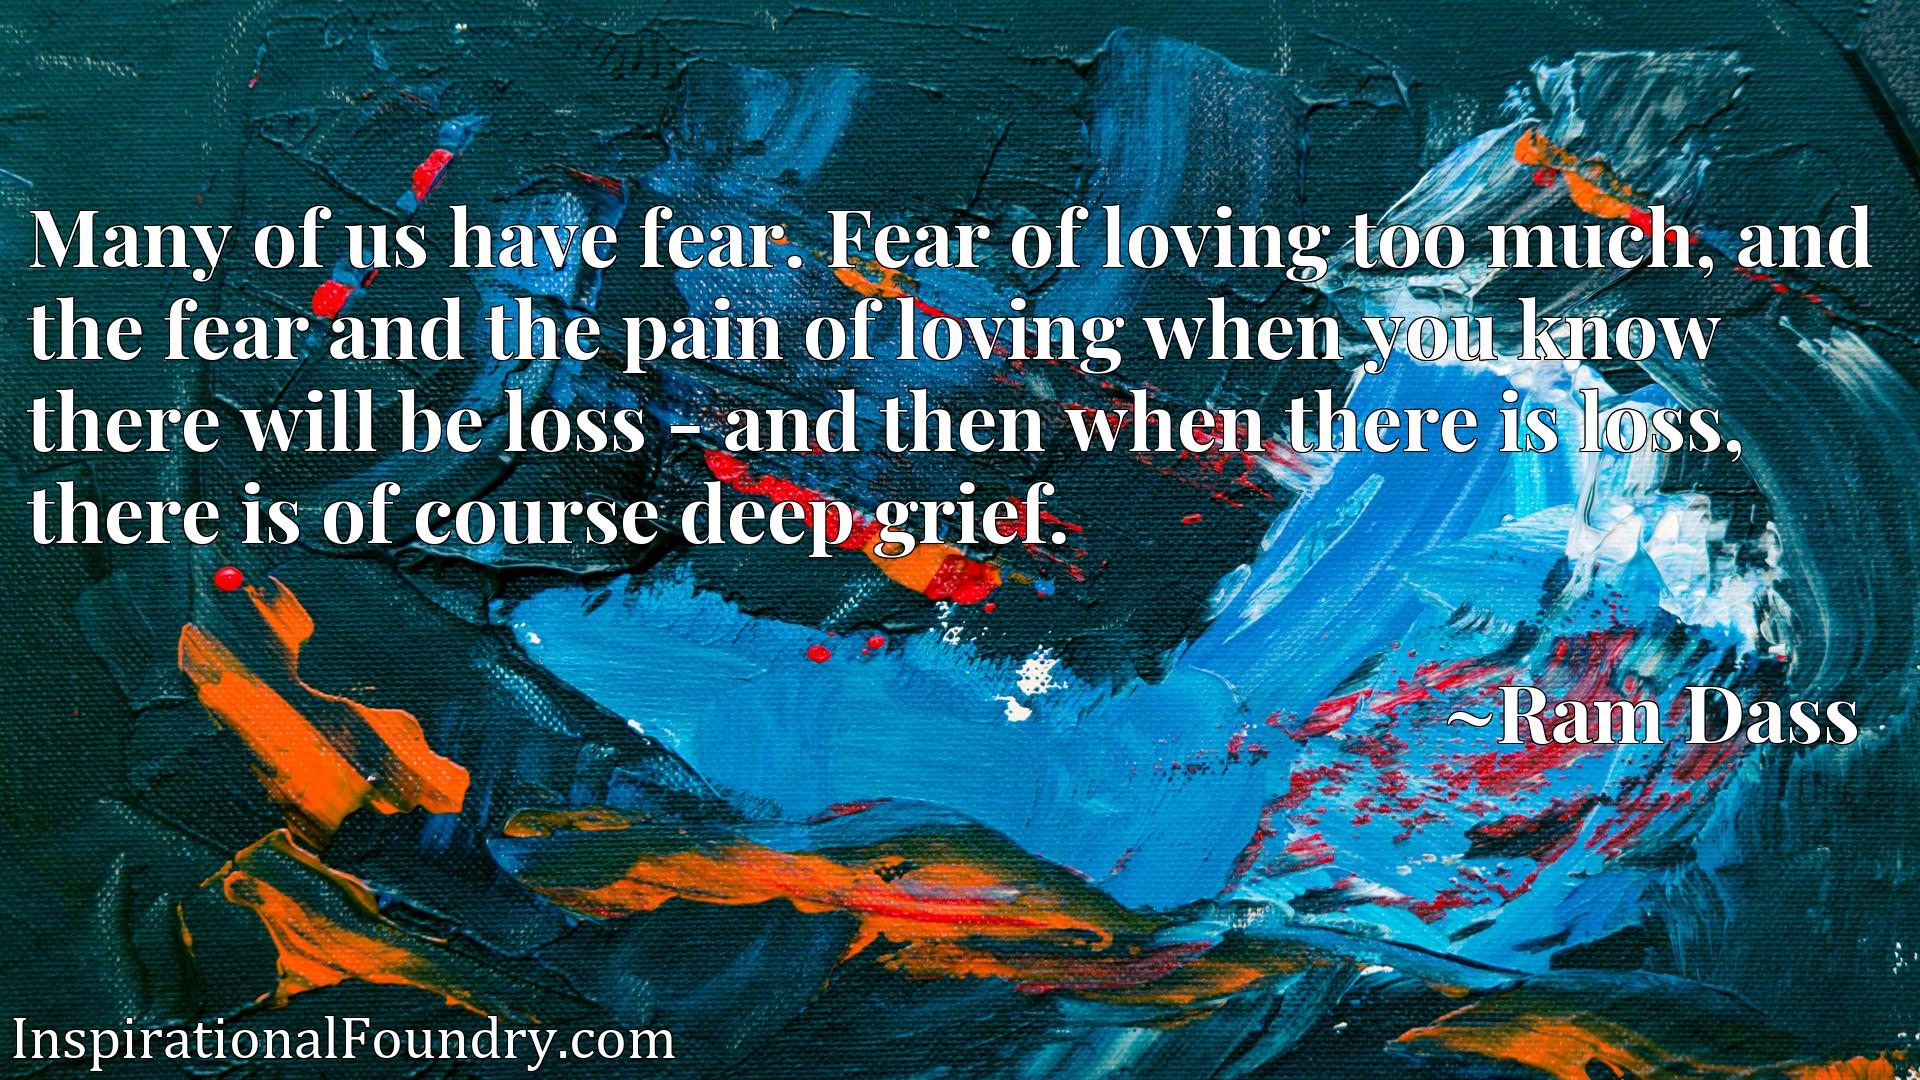 Many of us have fear. Fear of loving too much, and the fear and the pain of loving when you know there will be loss - and then when there is loss, there is of course deep grief.